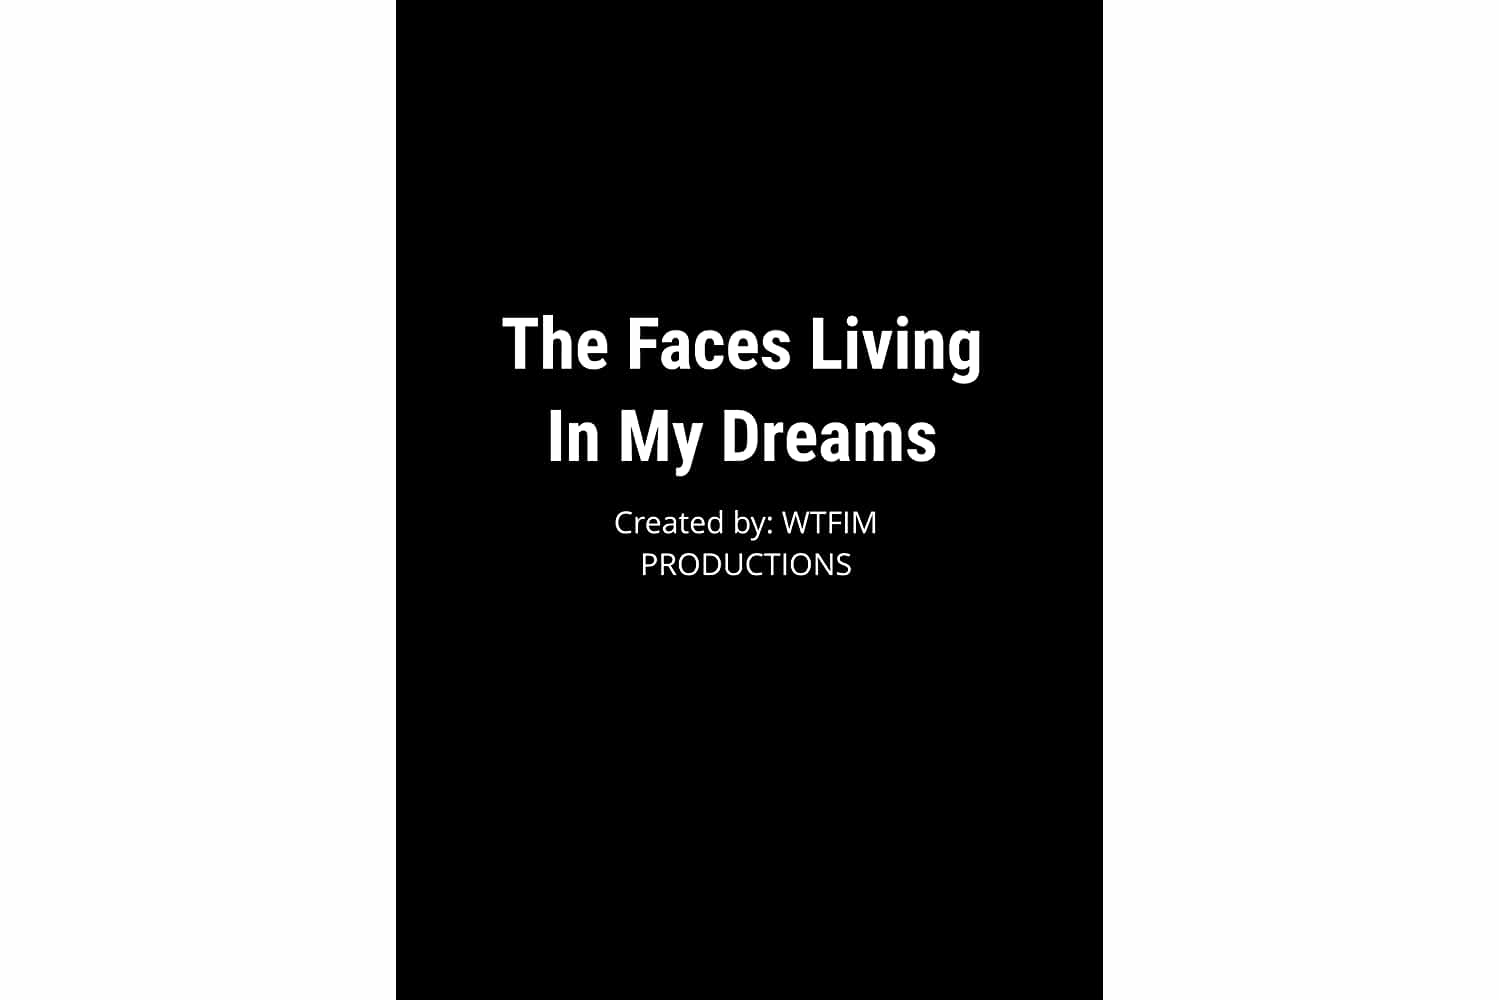 The Faces Living in My Dreams (2018)